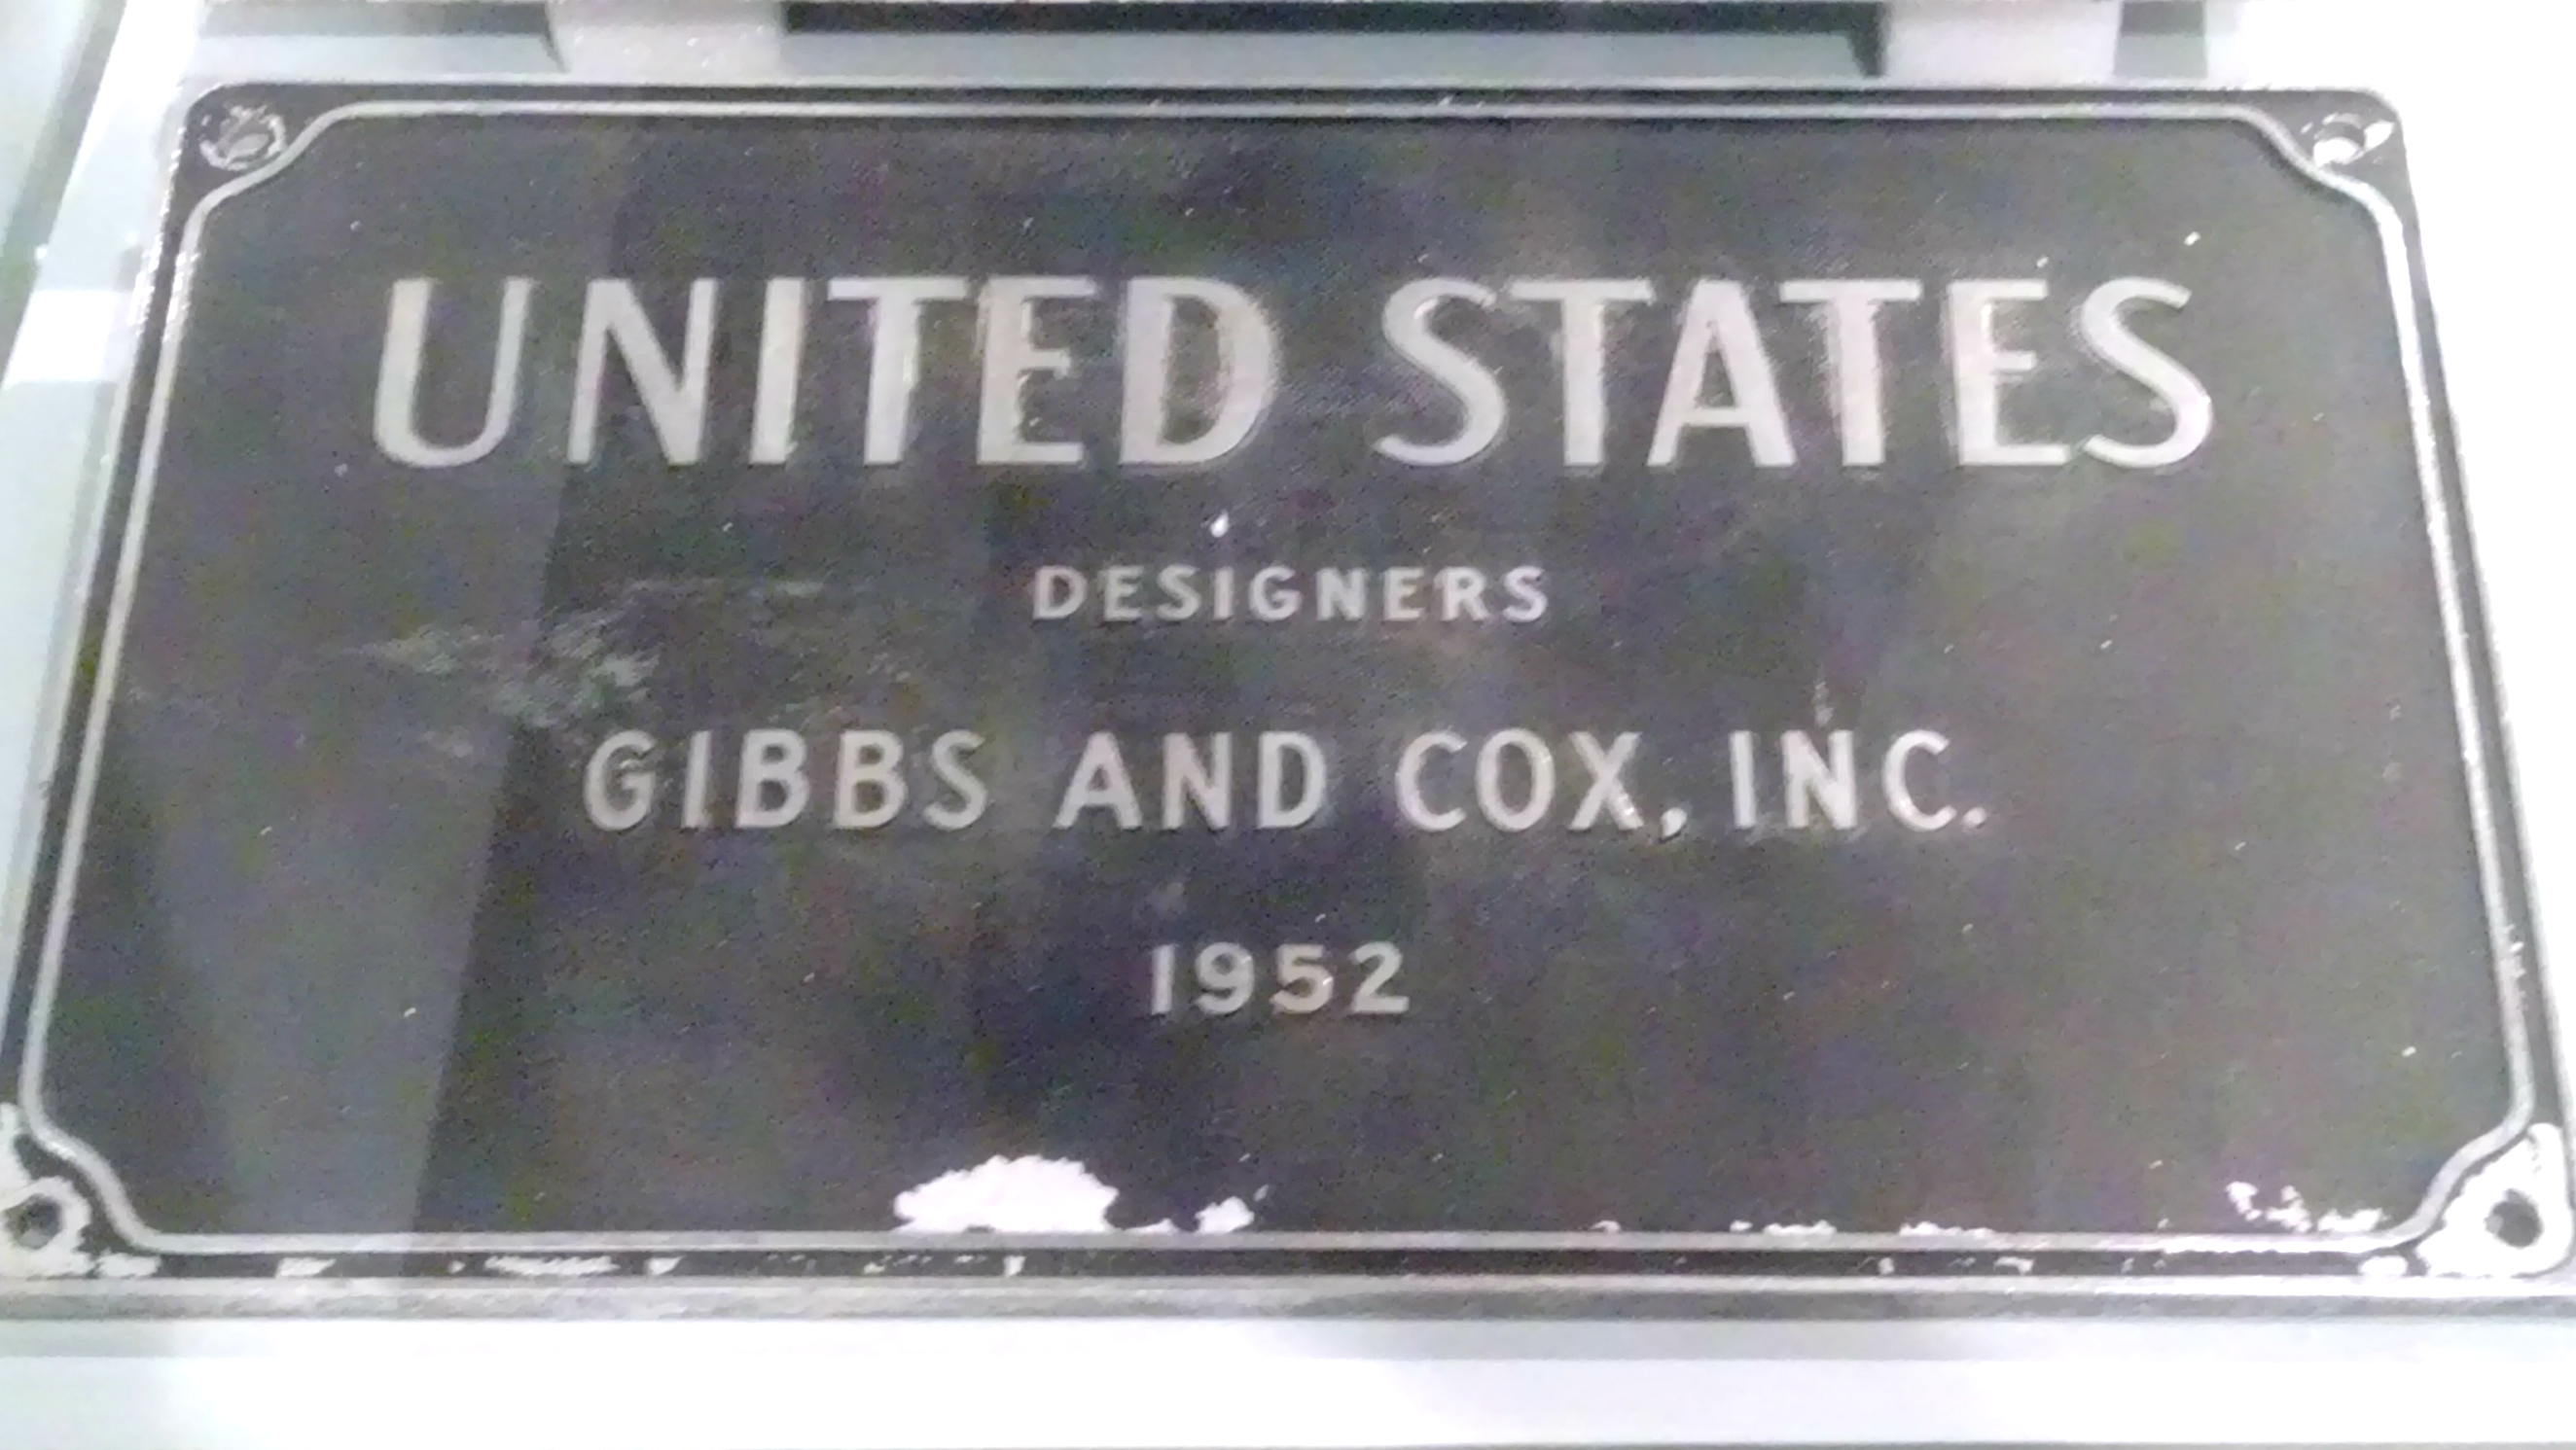 The SS United States building plaque. (Credit: Tom Rickert)